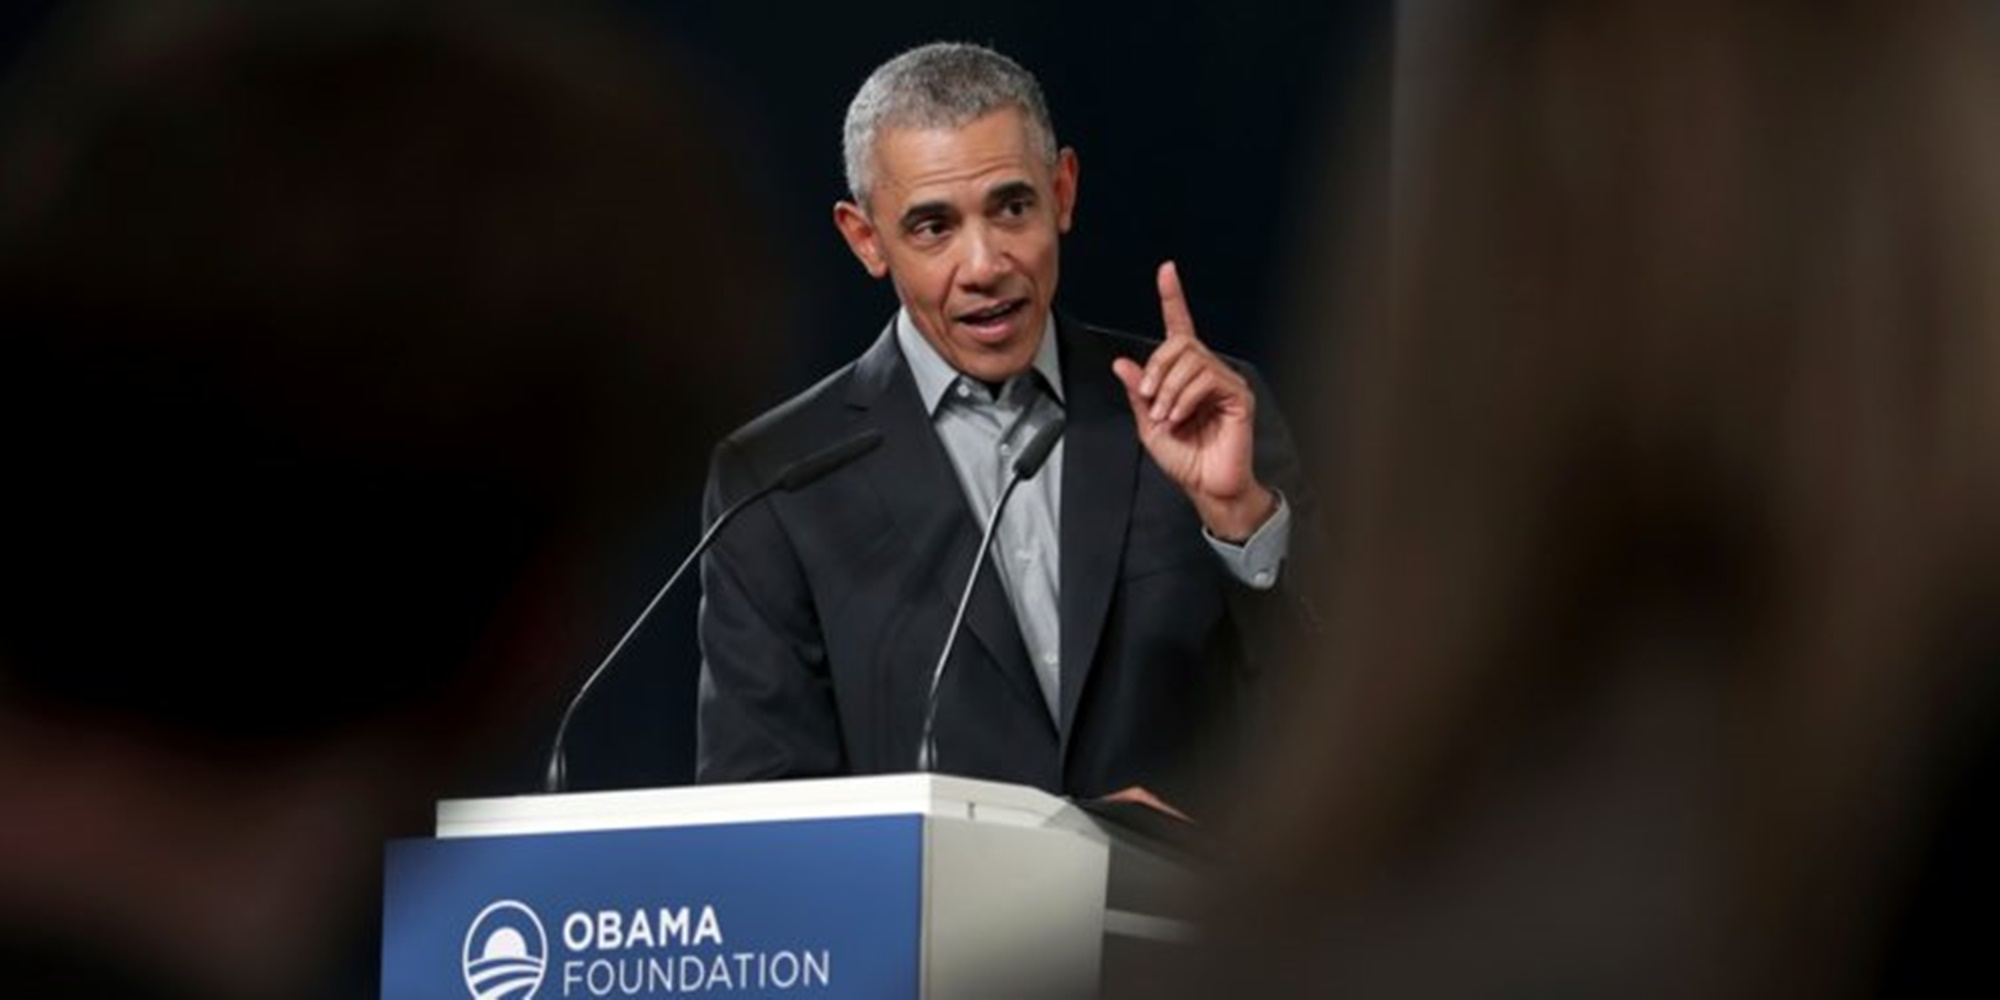 obama-claims-democrats-are-targeting-party-members-who-dont-agree-with-left-views